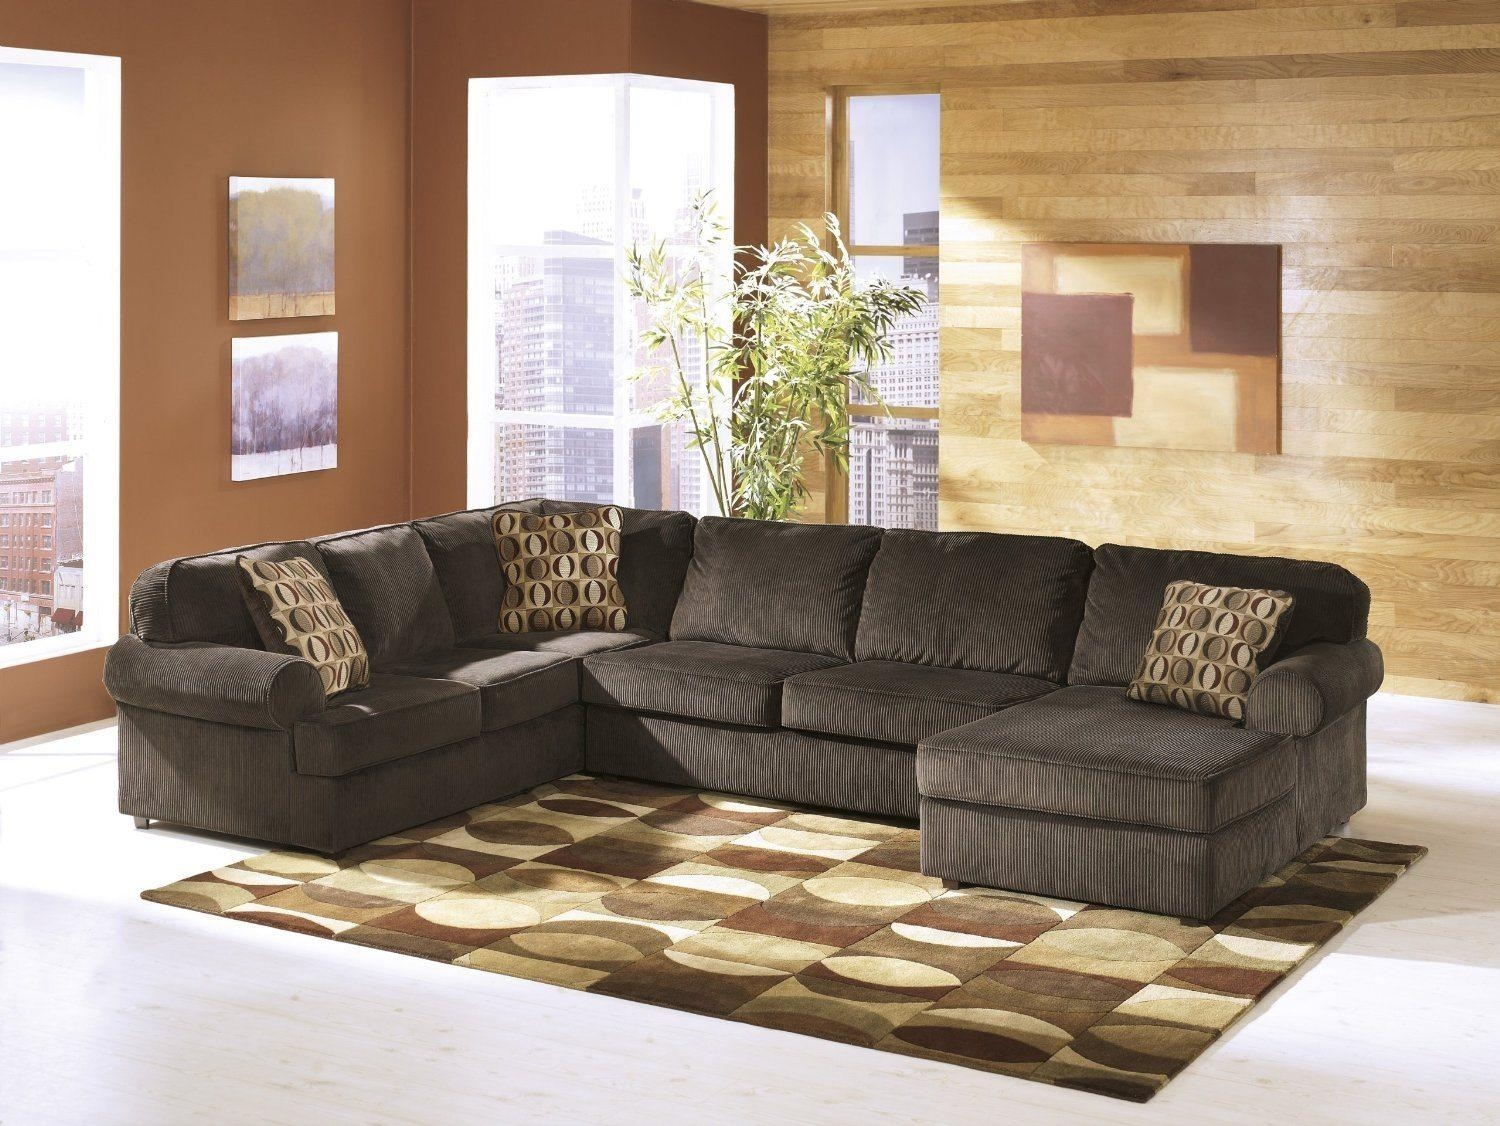 Faux Leather Sectional Sofa Ashley | Sofa Gallery | Kengire Intended For Ashley Faux Leather Sectional Sofas (View 8 of 20)